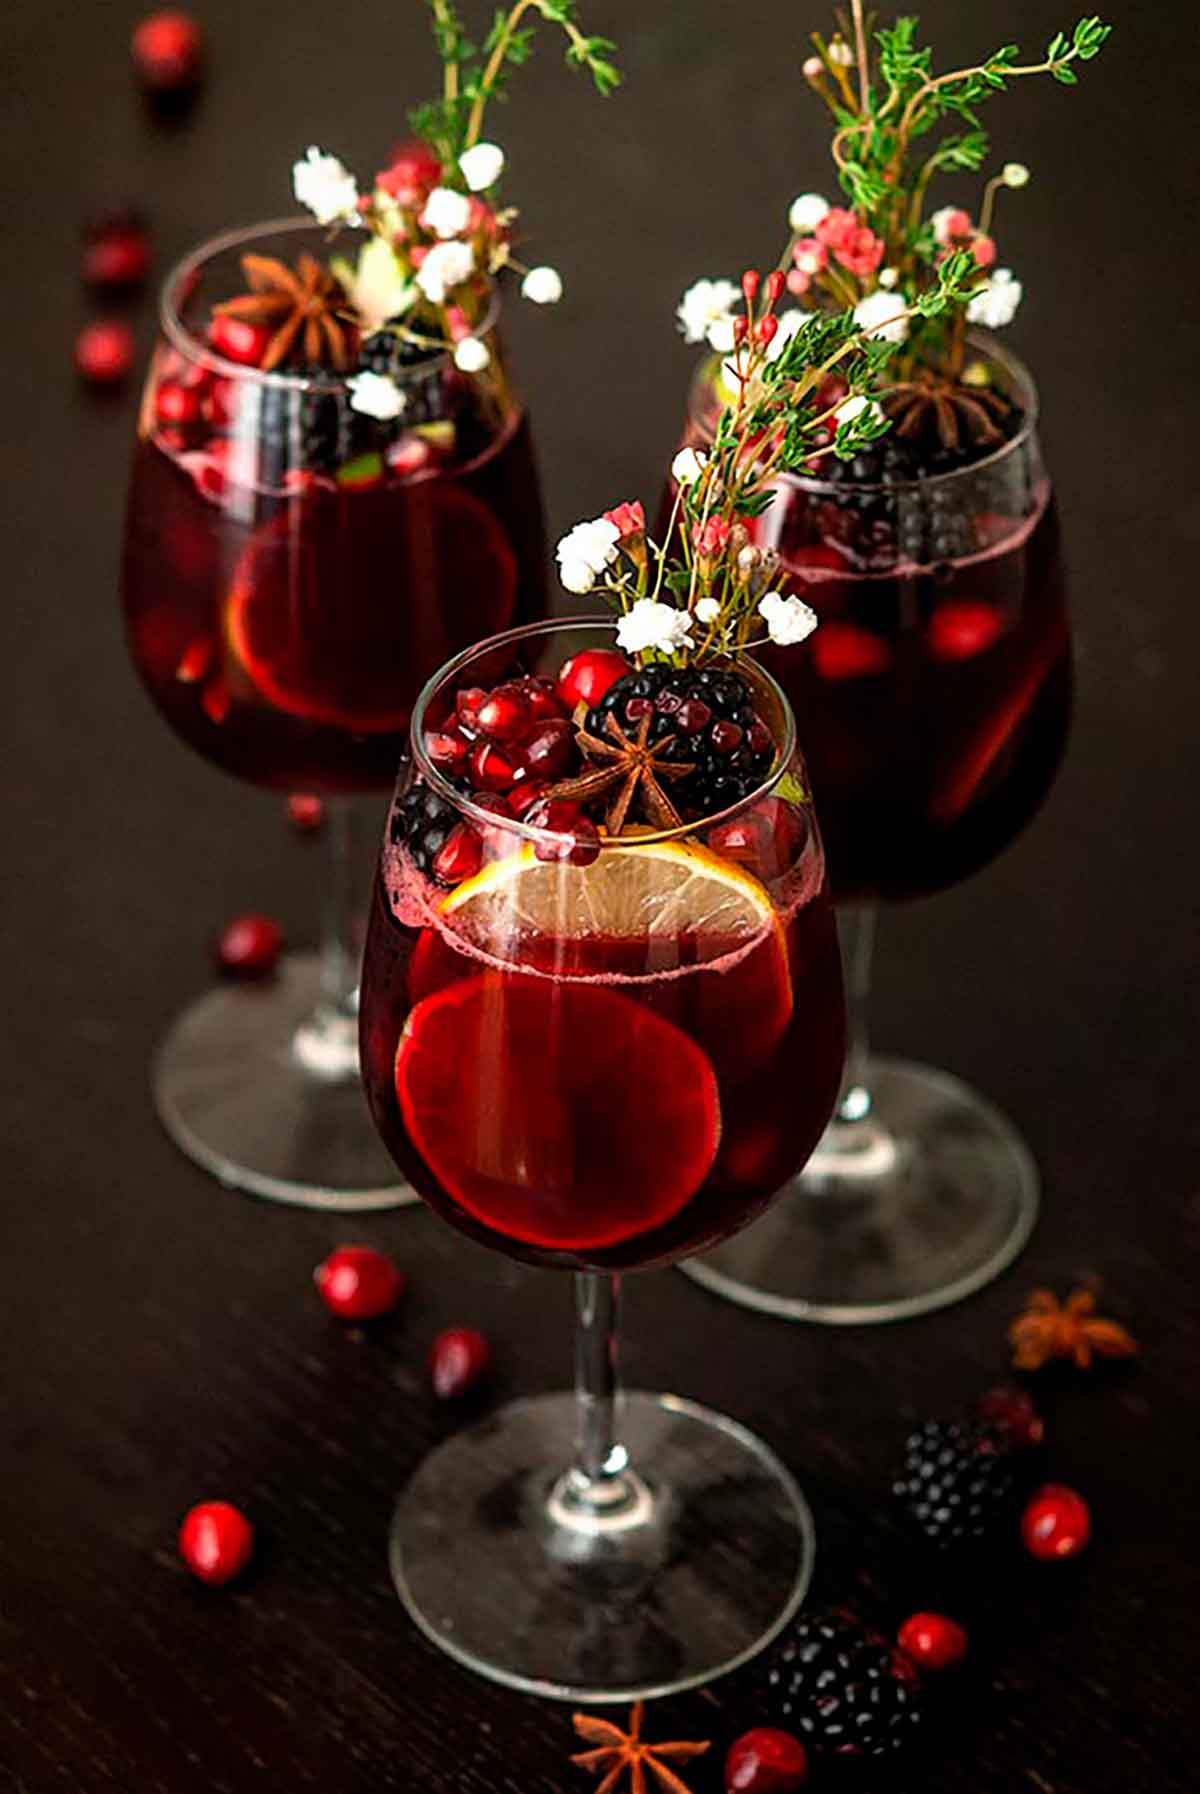 3 glasses of sangria garnished with fruits, flowers, herbs and star anise, with a few scattered cranberries and blackberries.